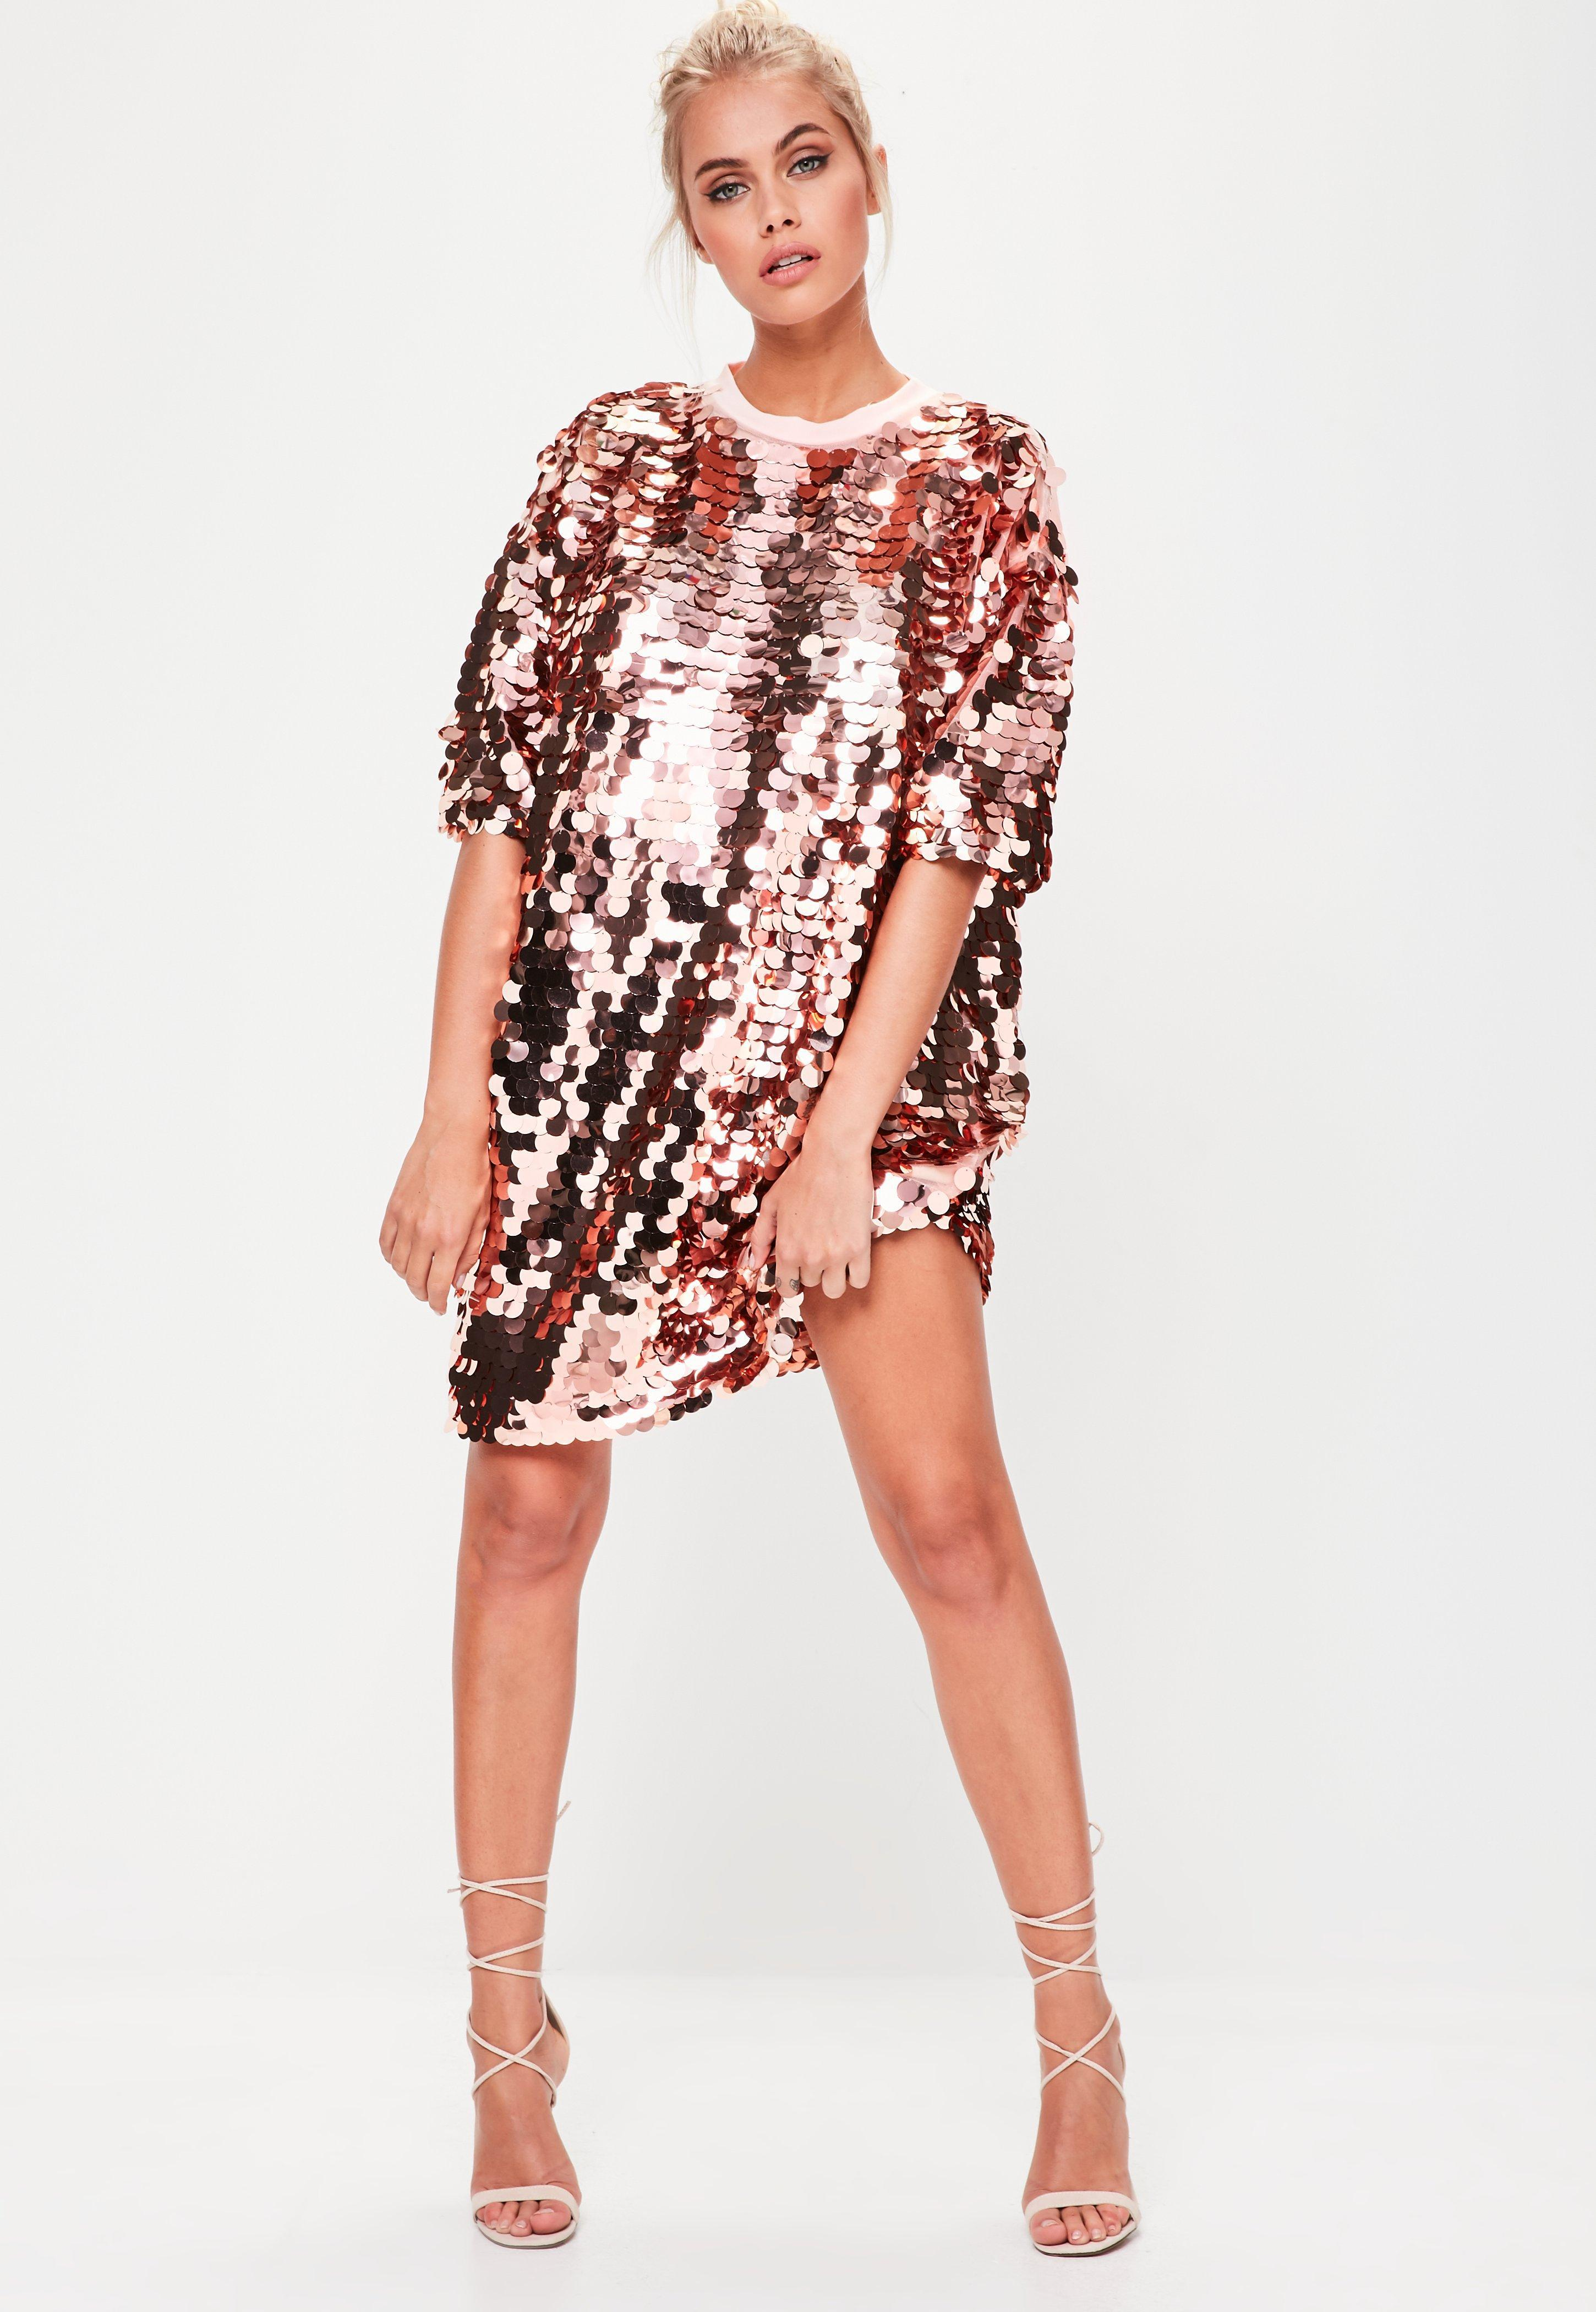 44fc2ae51b7 Lyst - Missguided Rose Gold Sequin T-shirt Dress in Pink